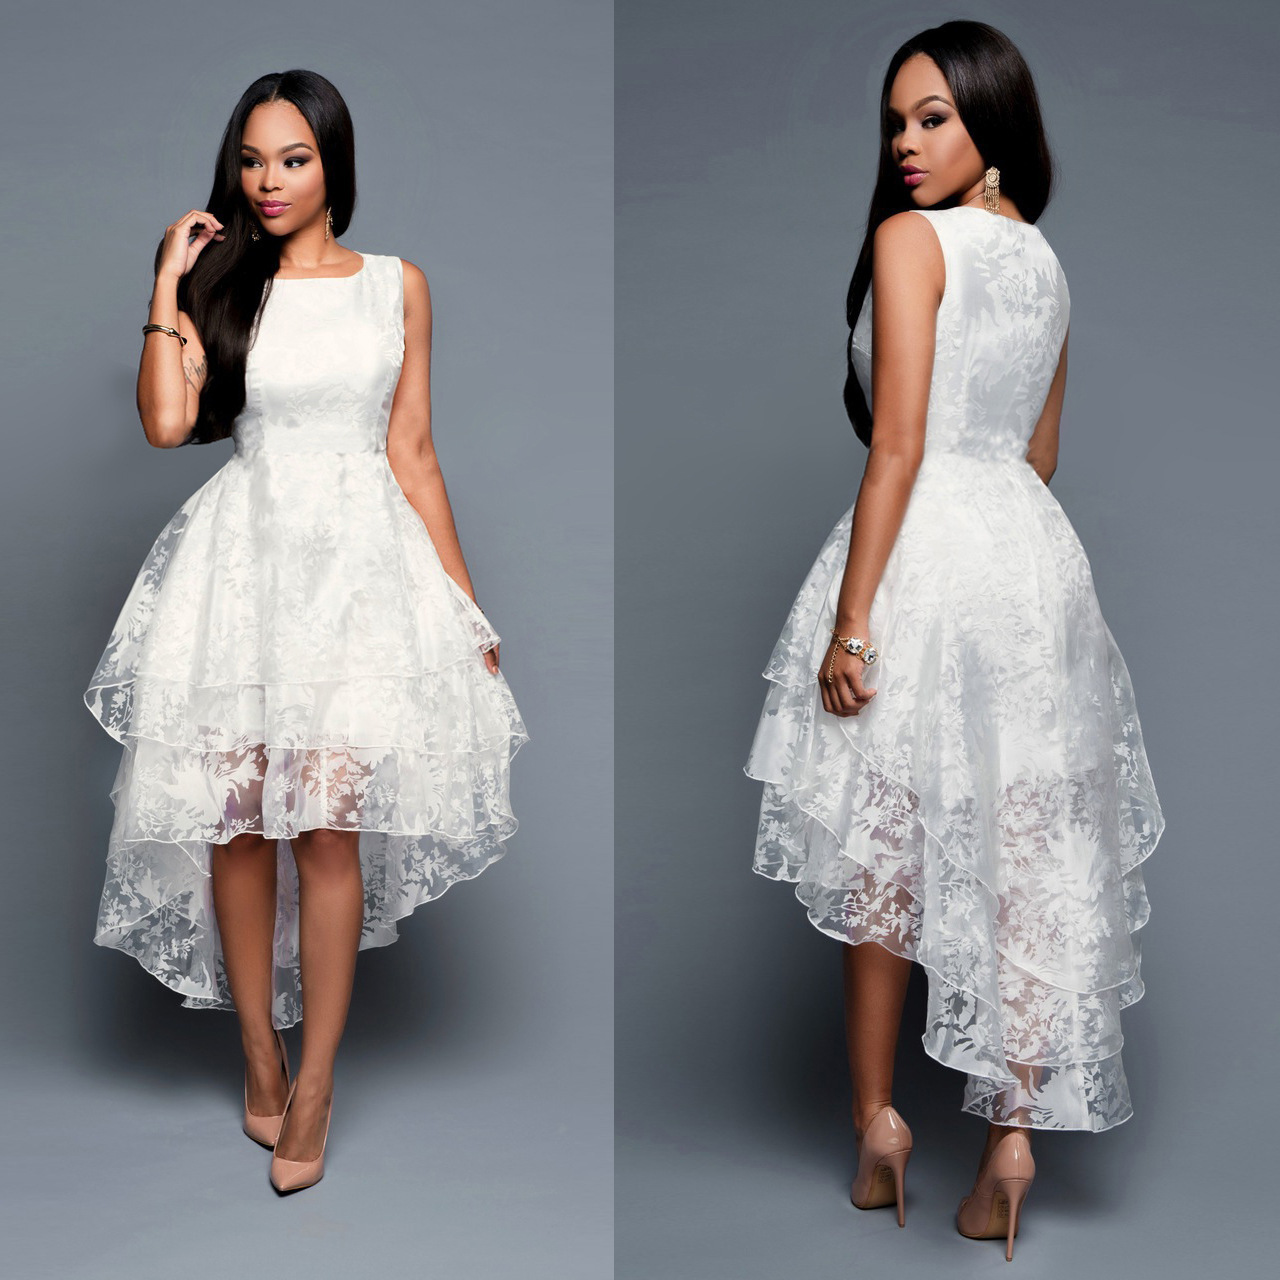 D319 White Lace Sleeveless High-Low Prom Gowns, Charming Lady Dress ...